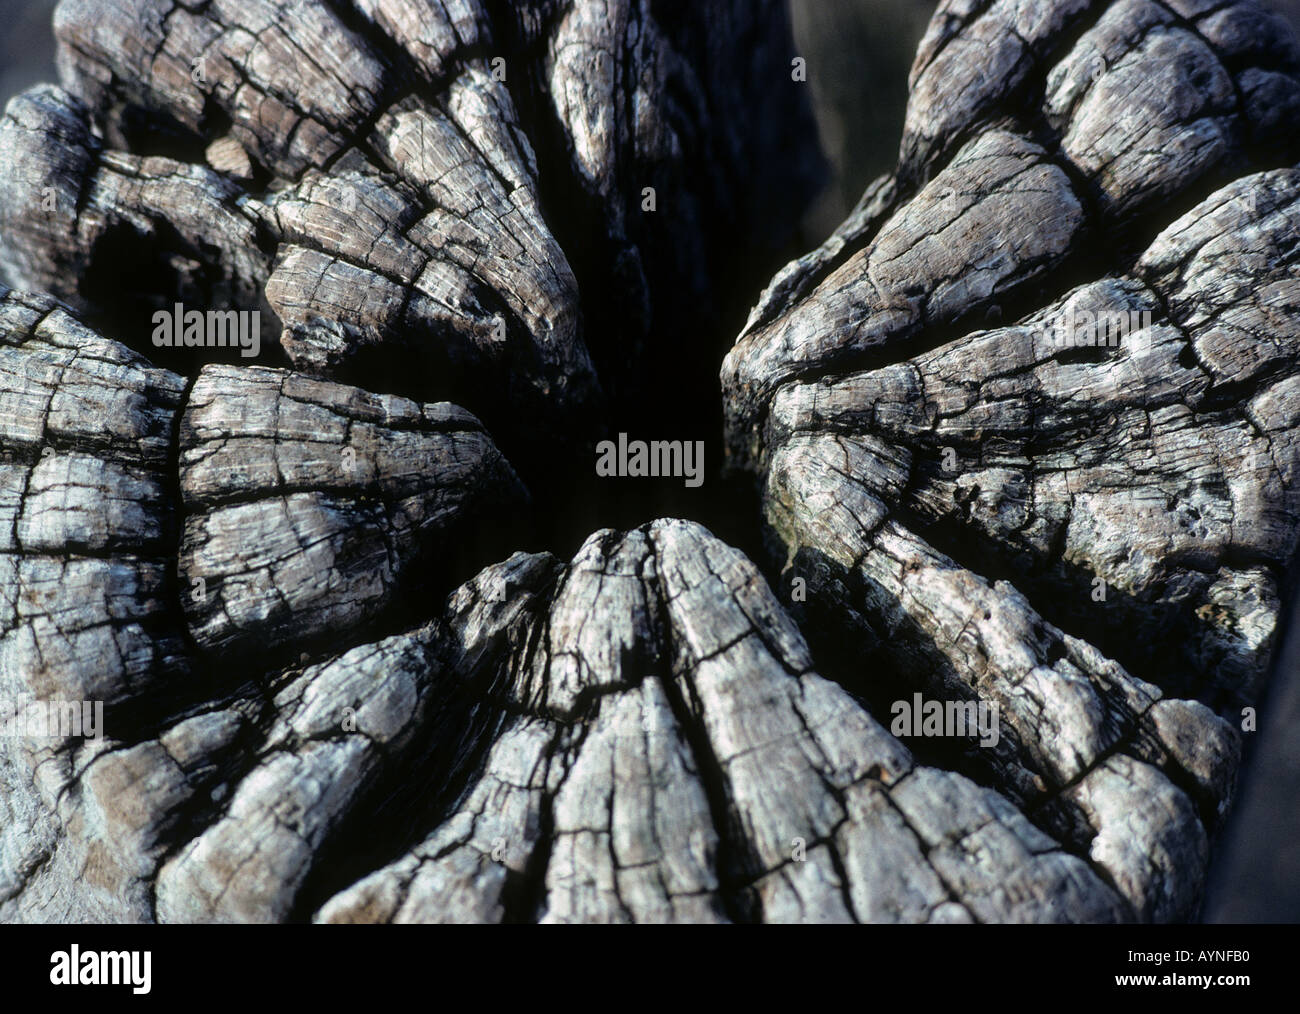 Close up of weathered bleached timber stump supporting a derelict pier Stock Photo